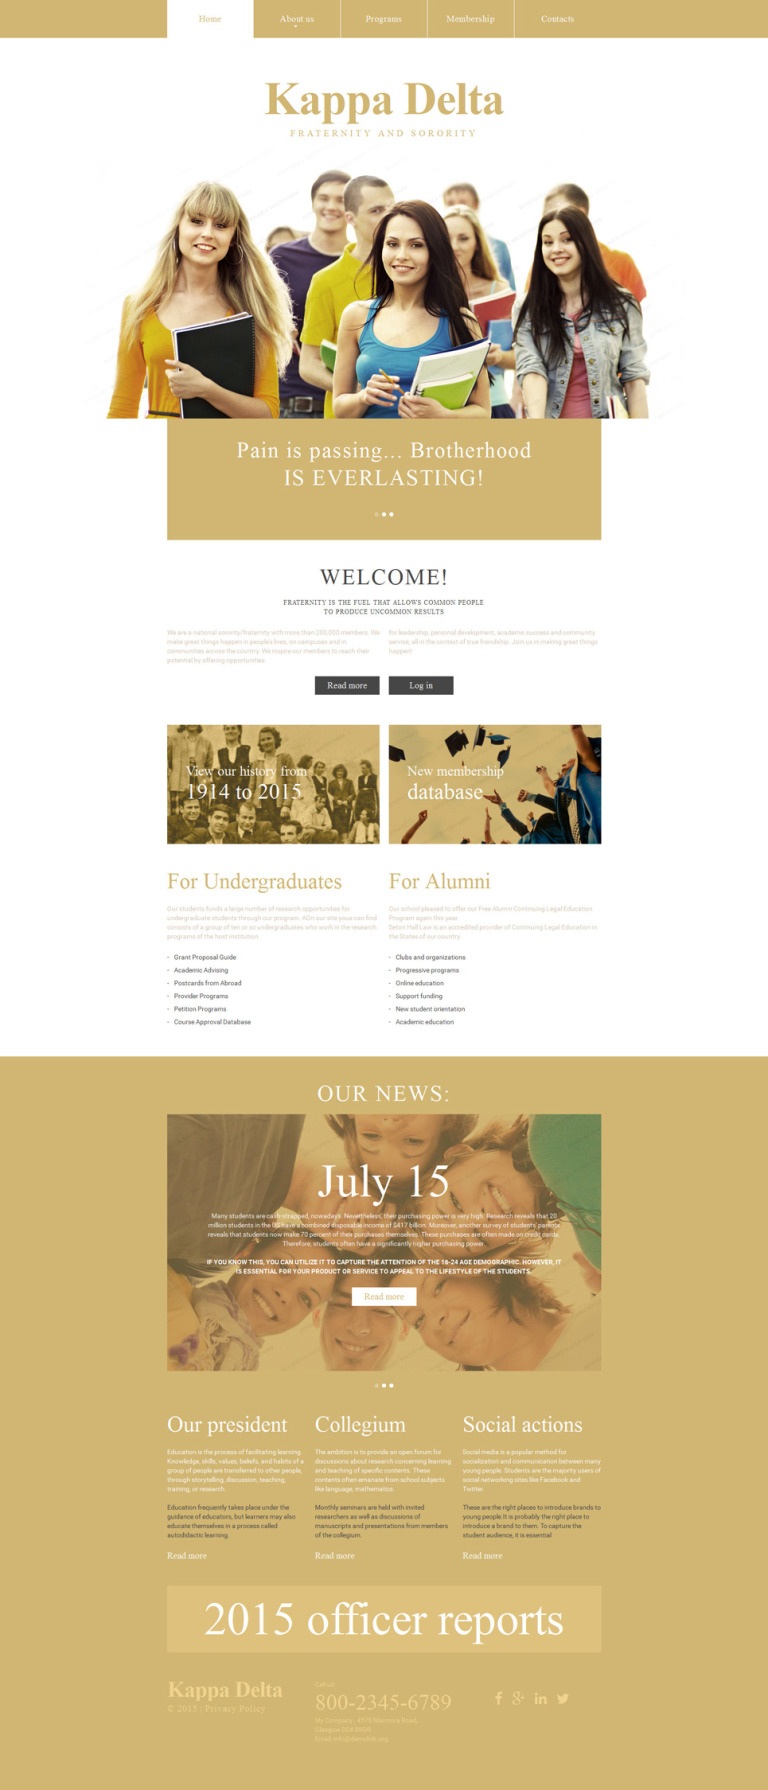 Kappa Delta Website Template New Screenshots BIG